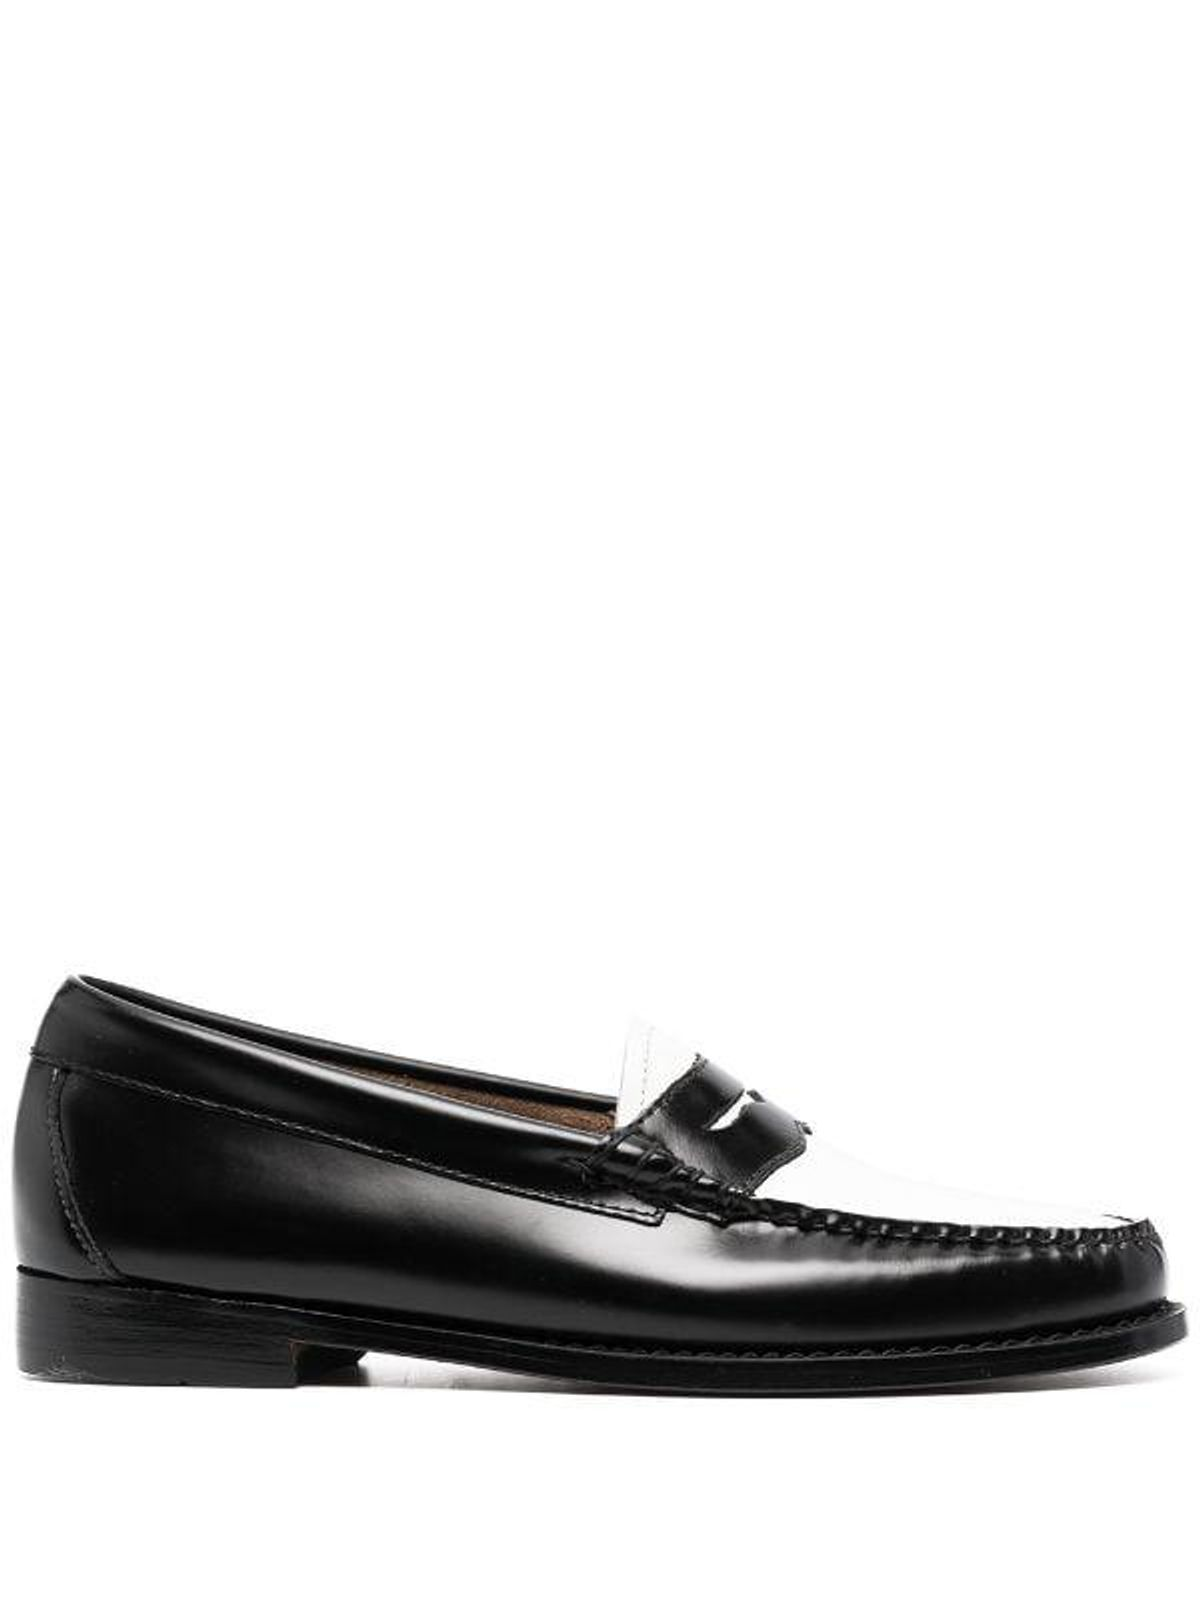 gh bass and co colour block penny loafers